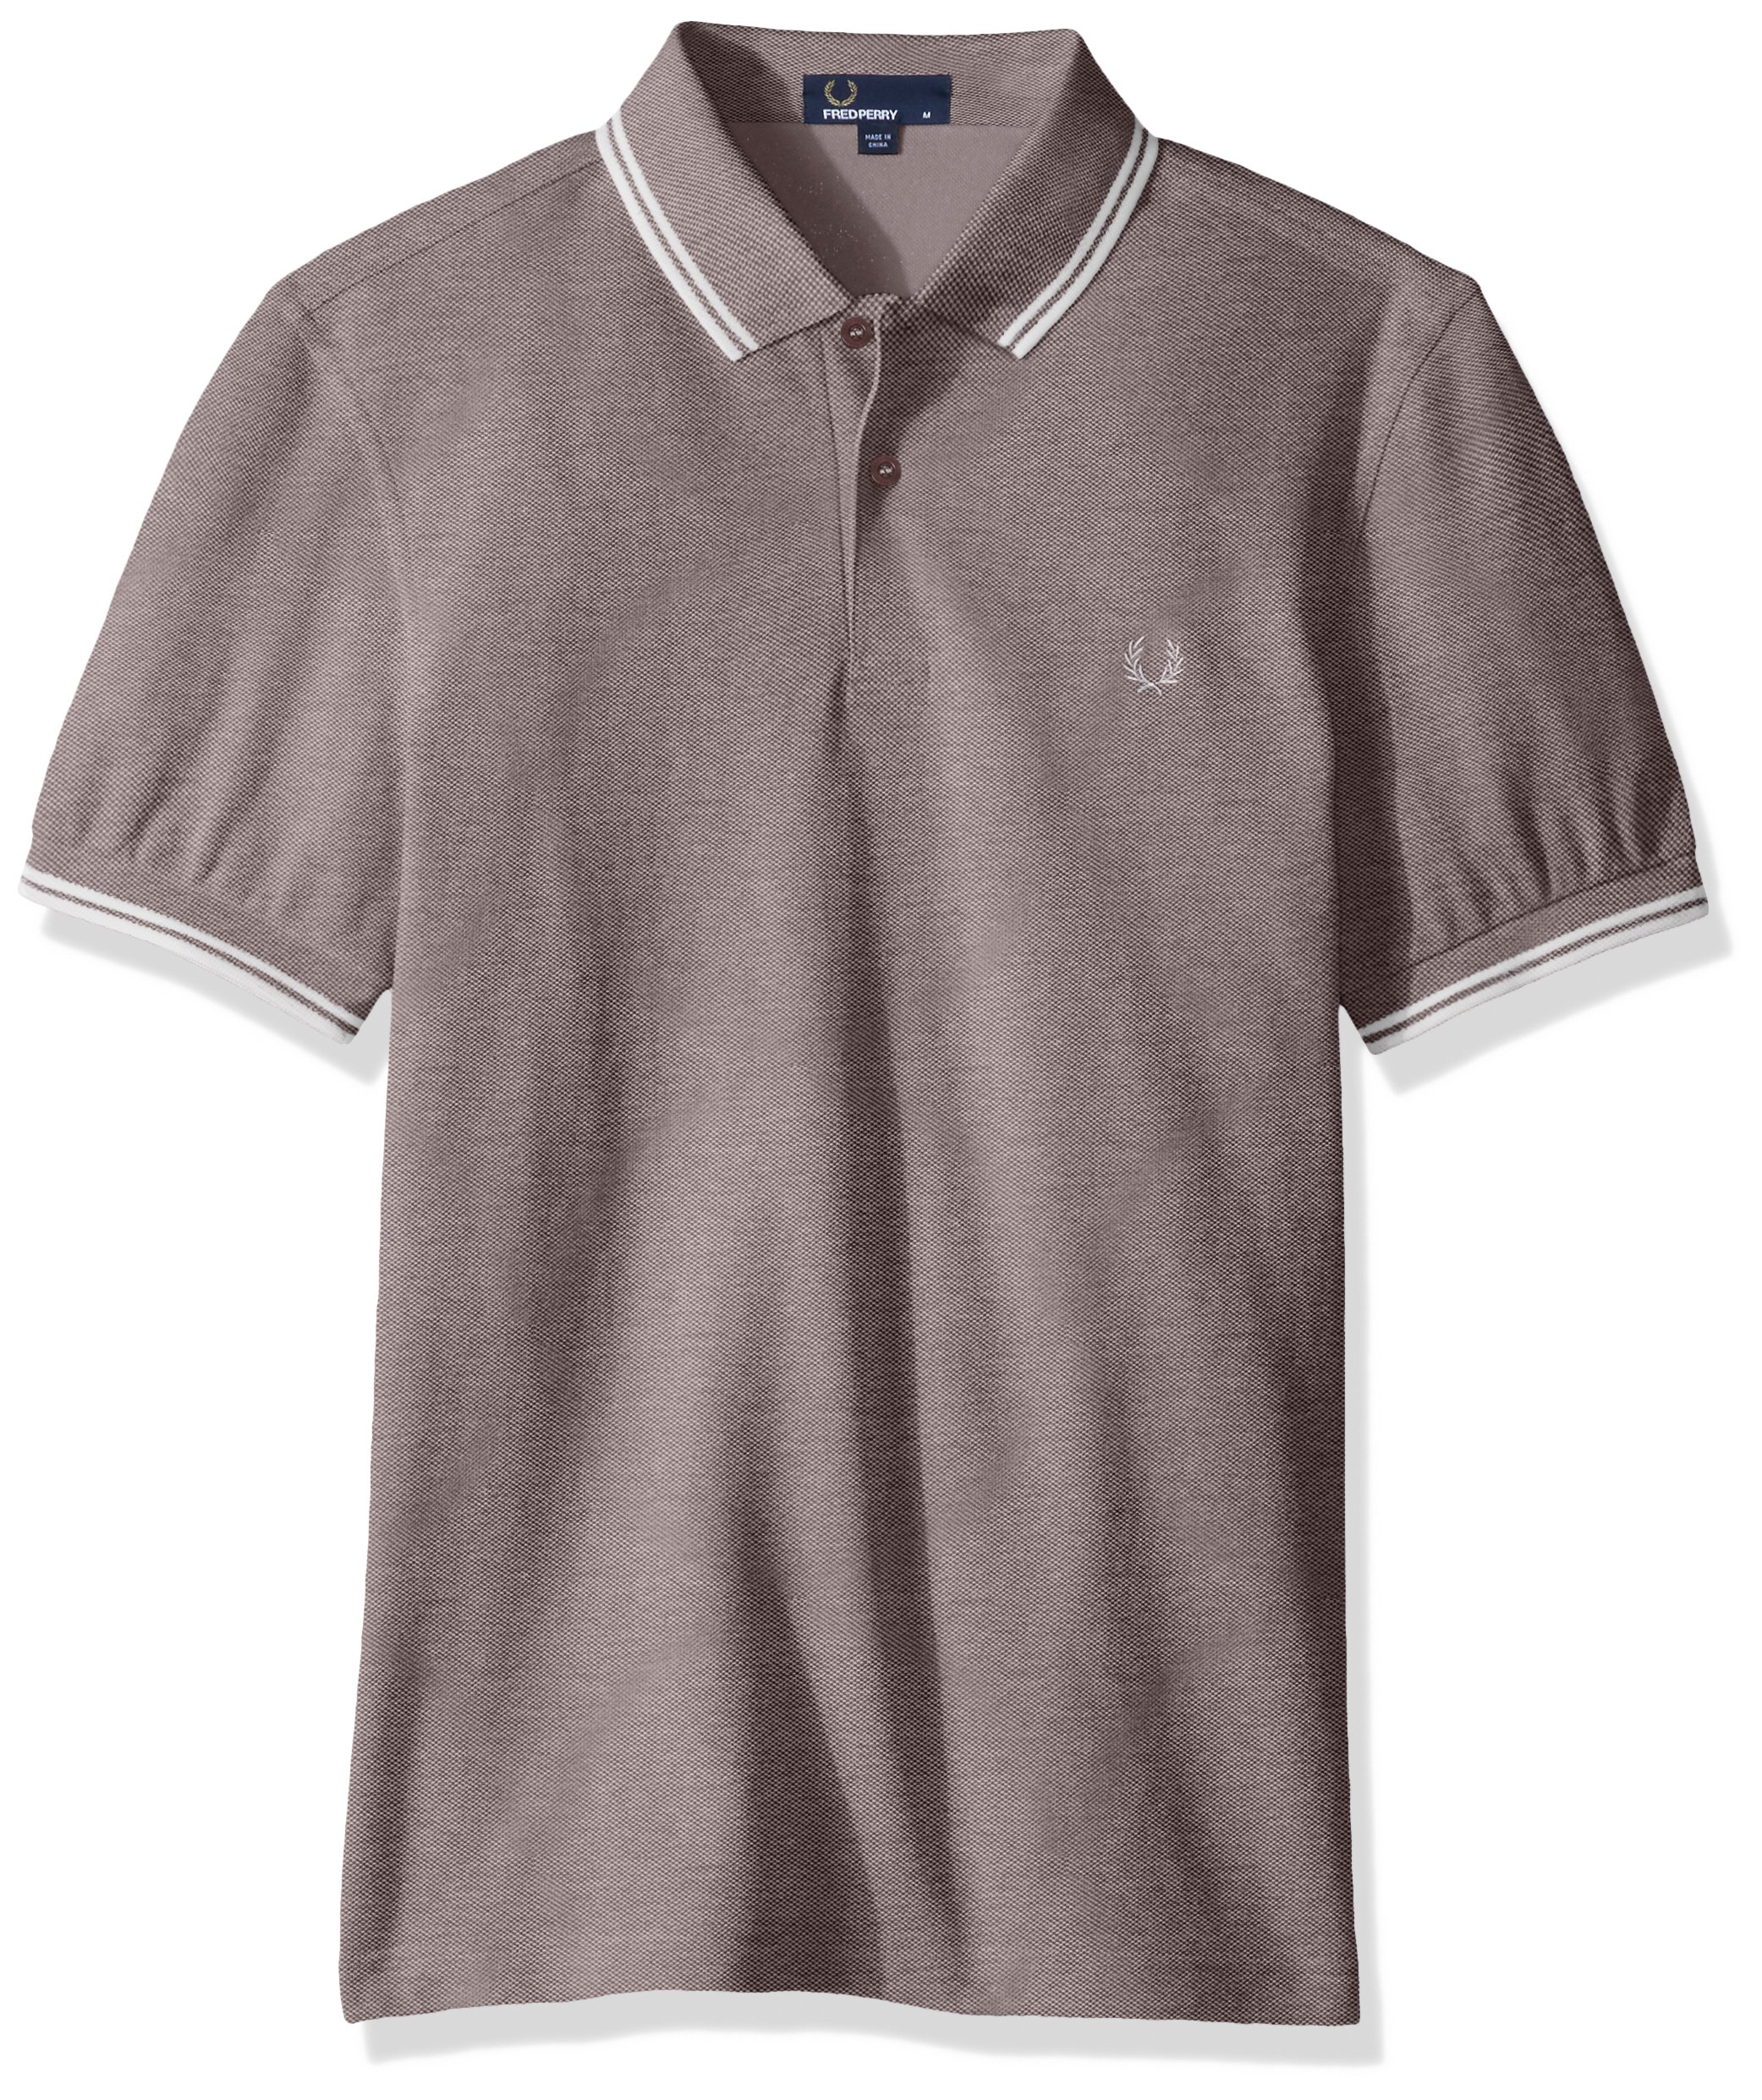 Fred Perry Men's Twin Tipped Shirt, Mahogany Oxforf, X-Large